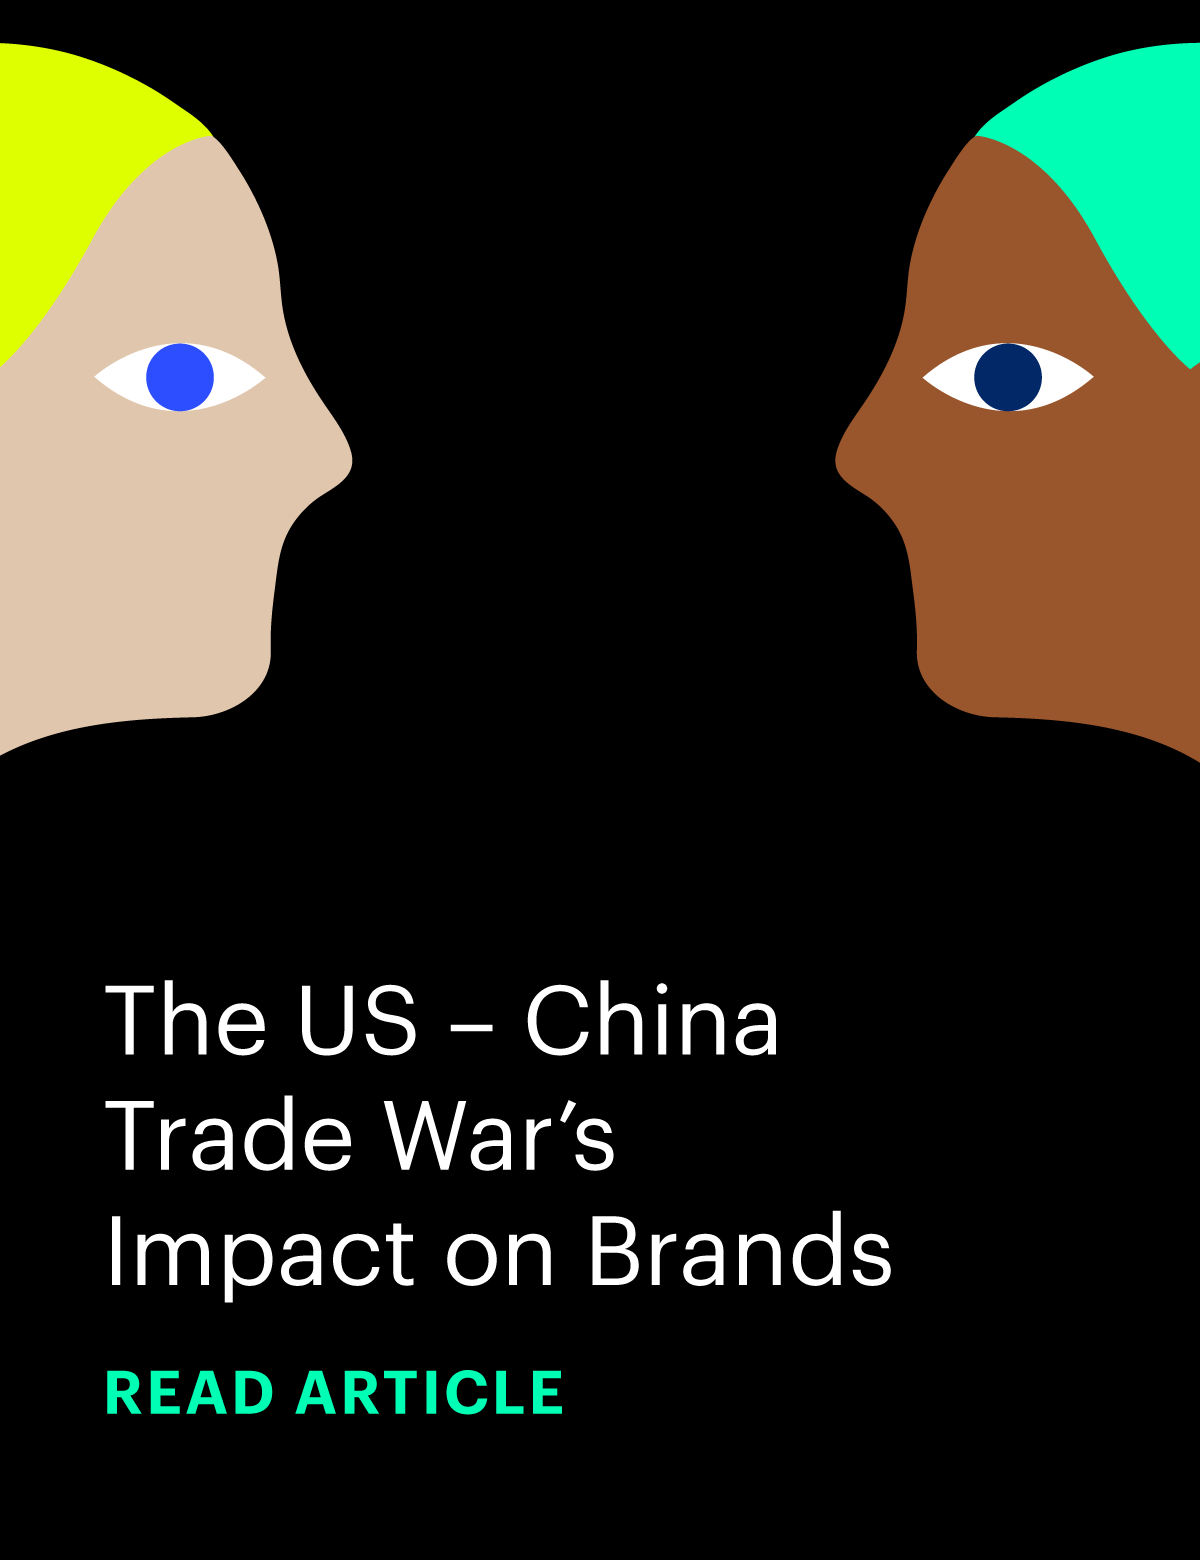 The US-China trade war's impact on brands